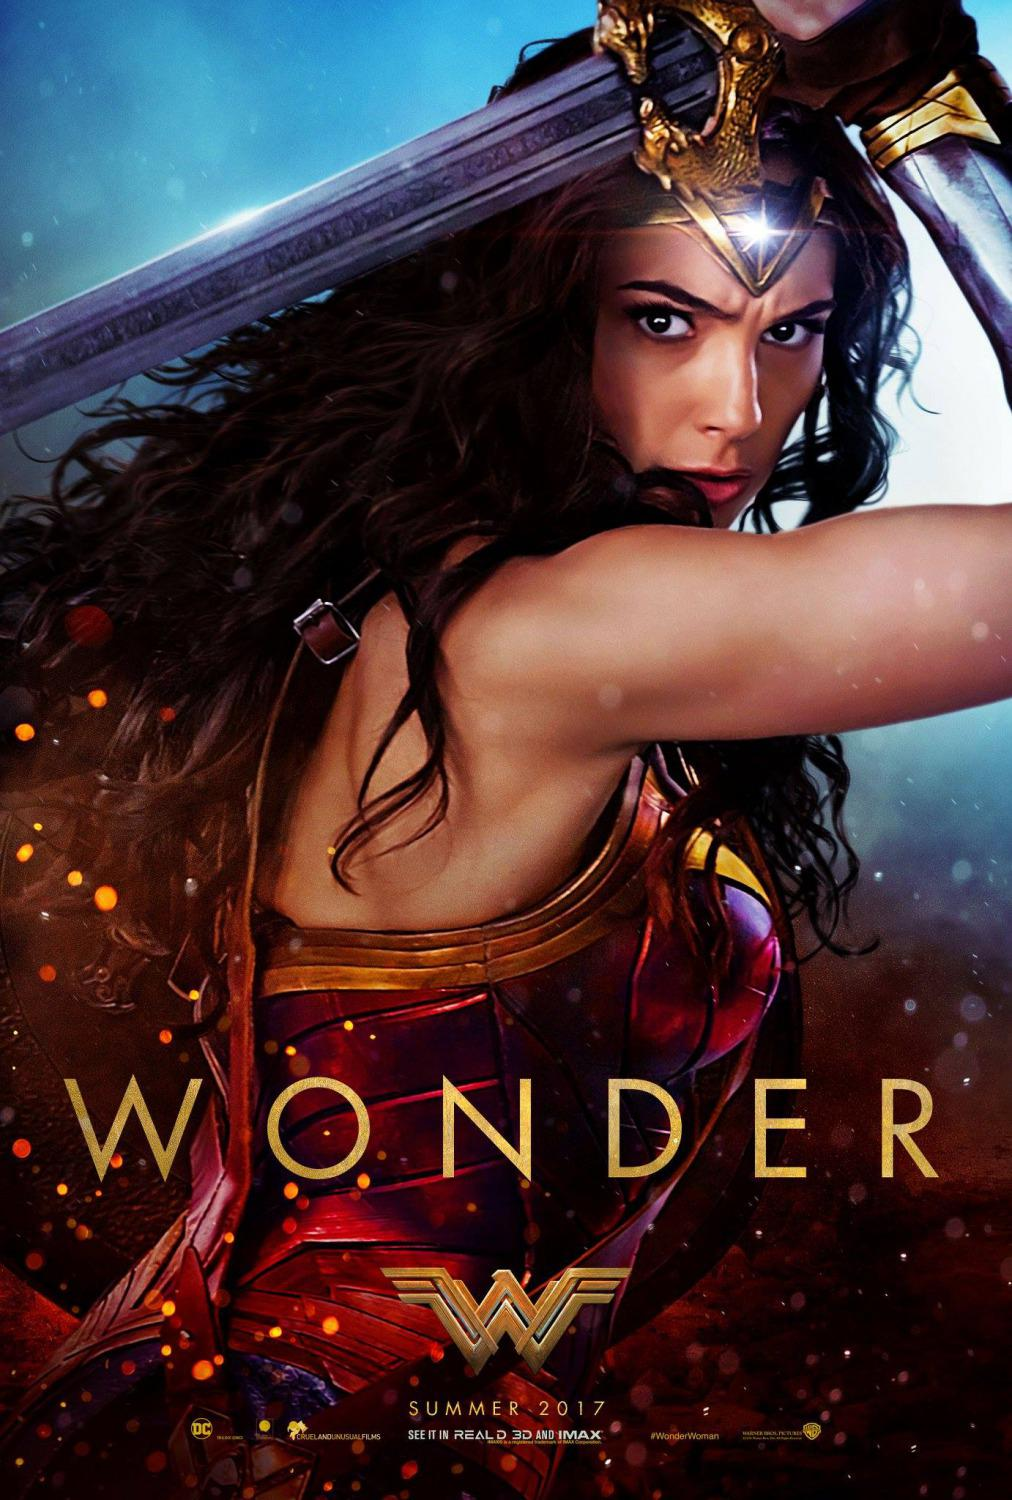 Wonder Woman - Gal Gadot - poster